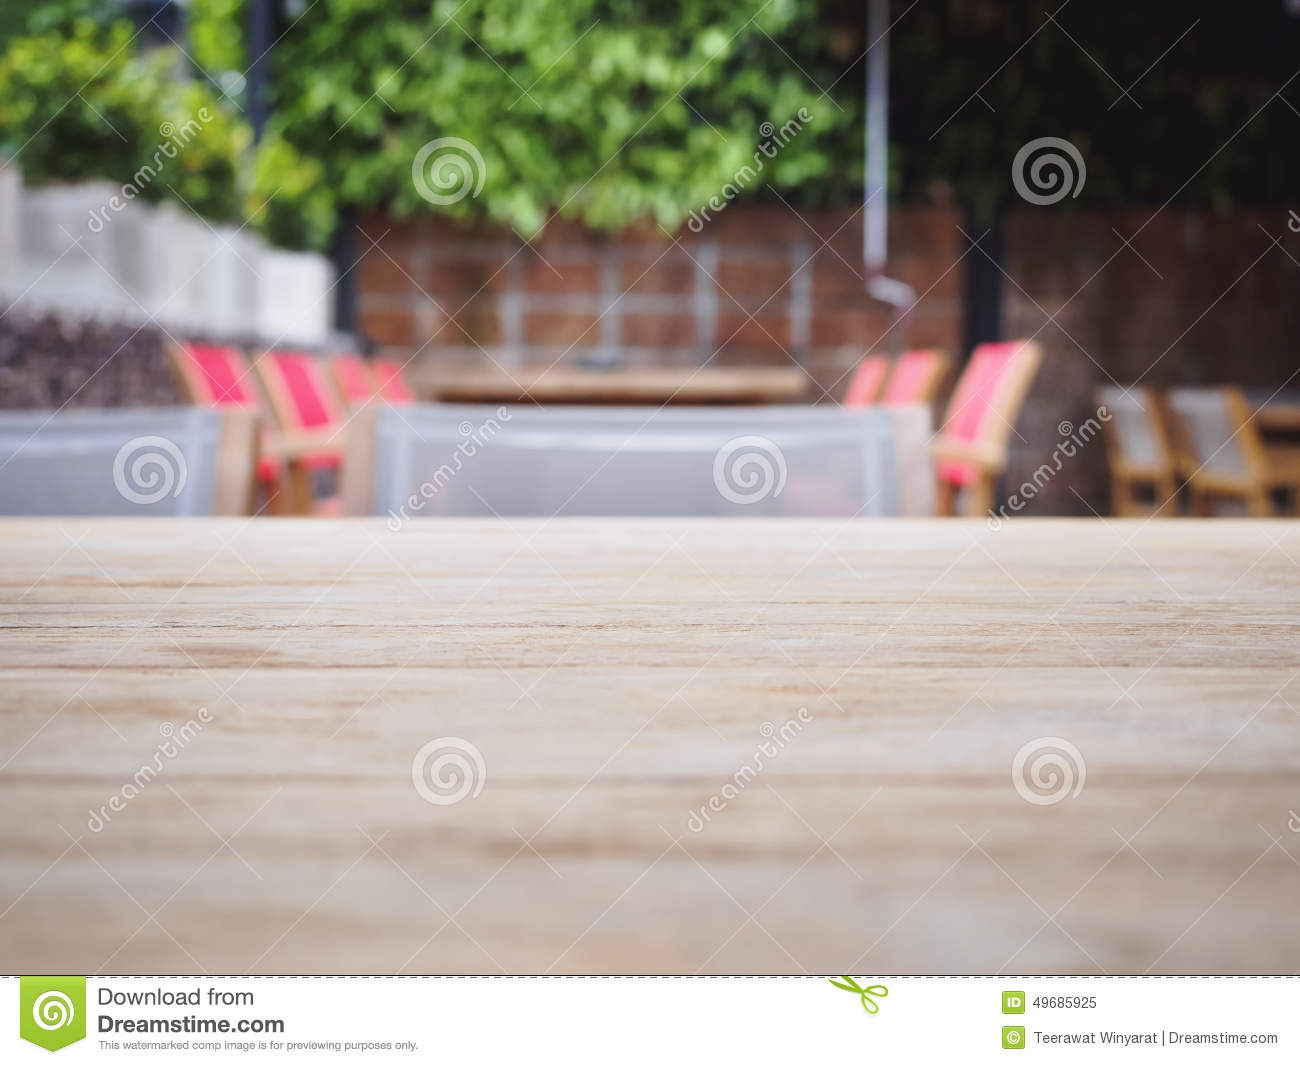 Decoration Restaurant Vintage Top Of Wooden Table With Blurred Restaurant Cafe